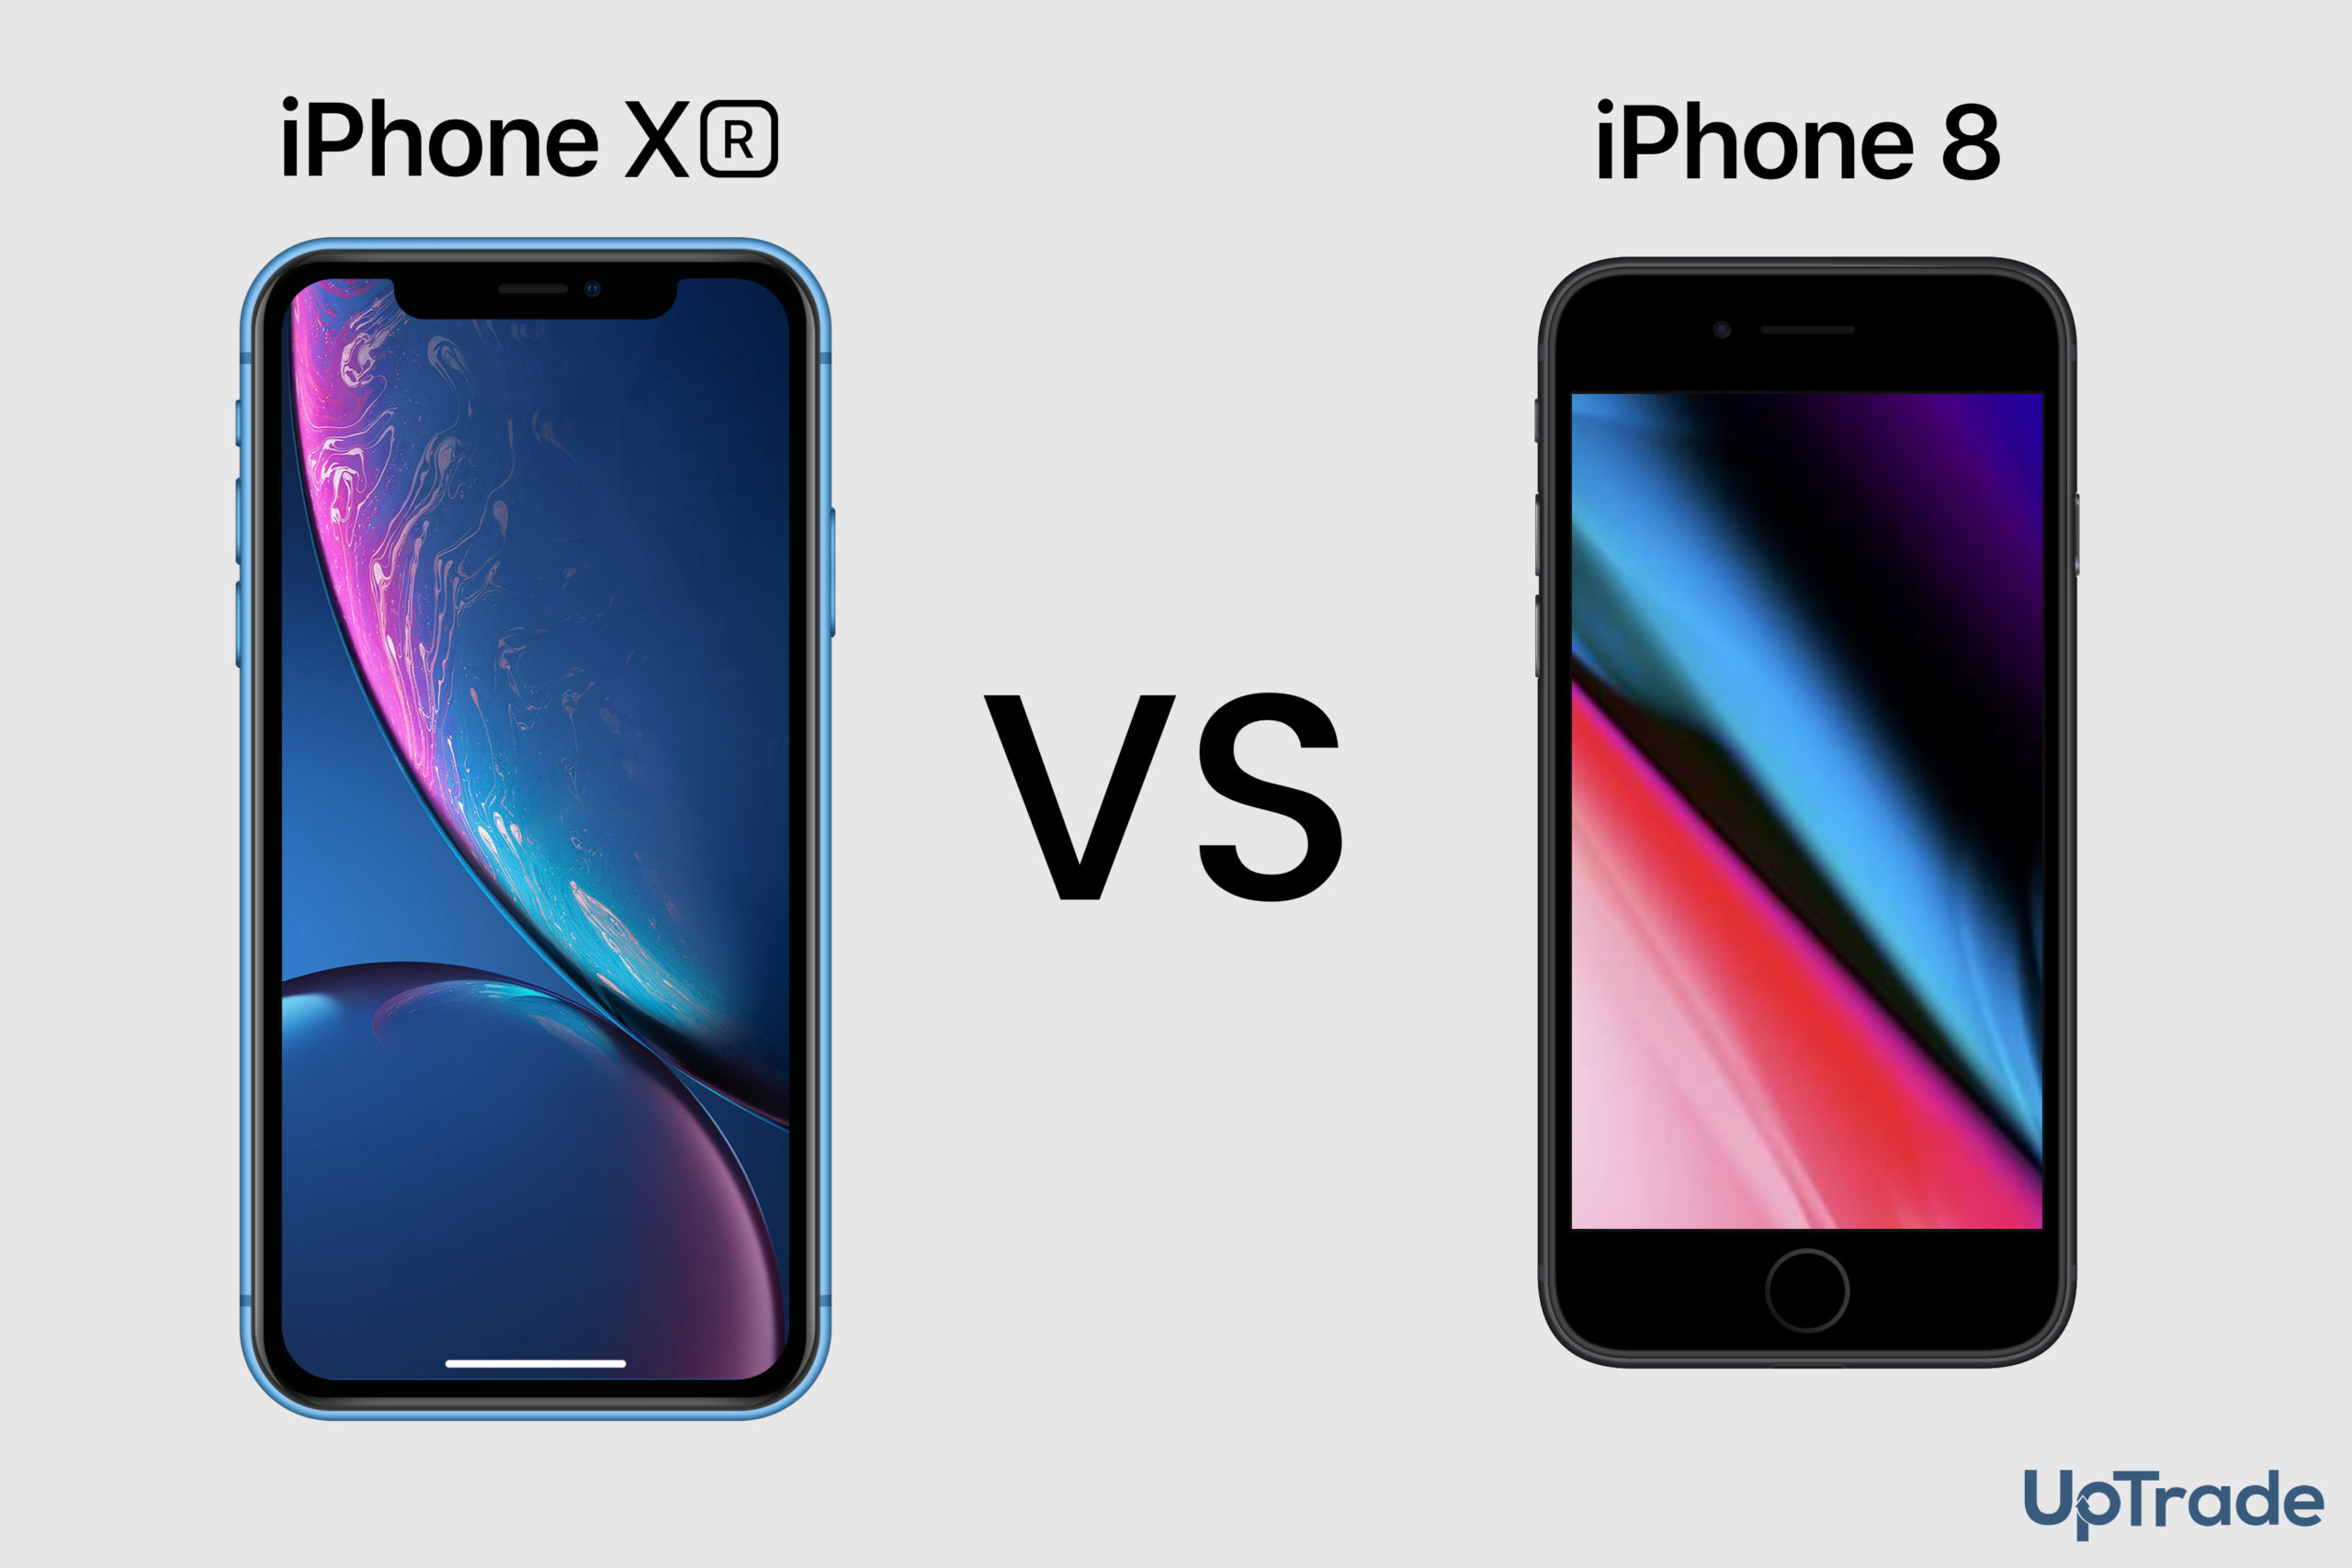 iPhone XR vs iPhone 8